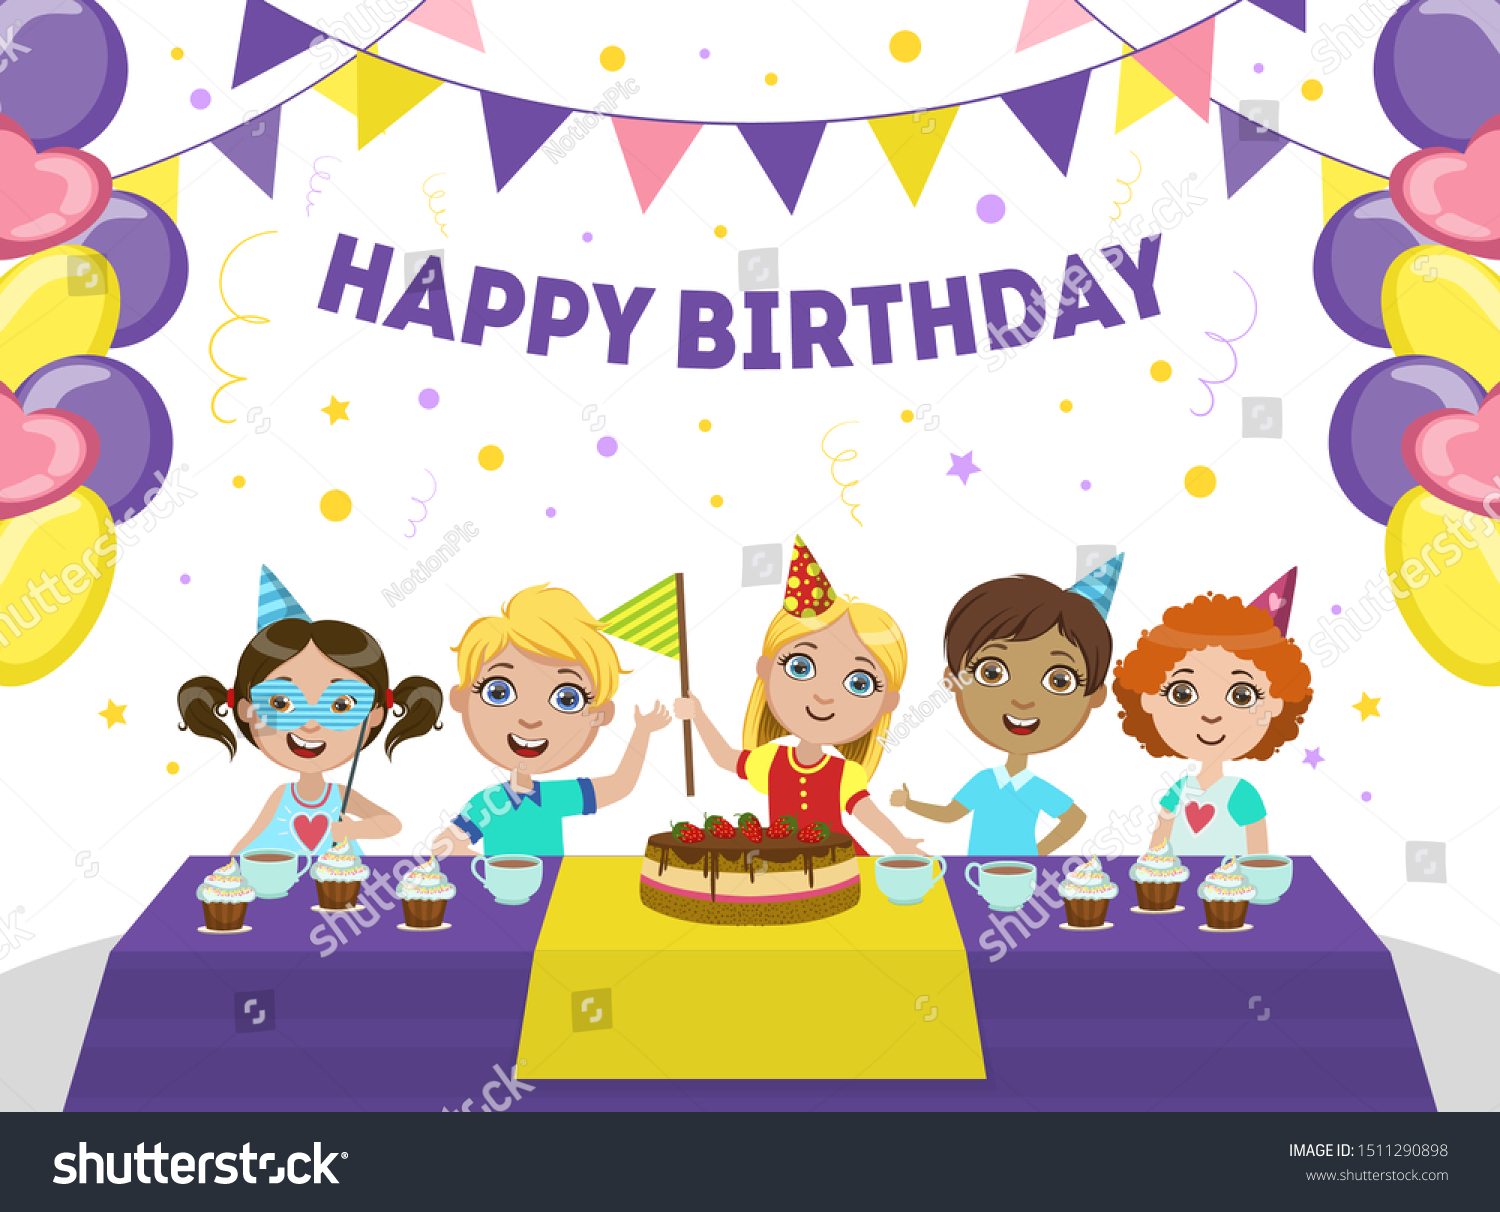 Happy Birthday Banner Template from image.shutterstock.com